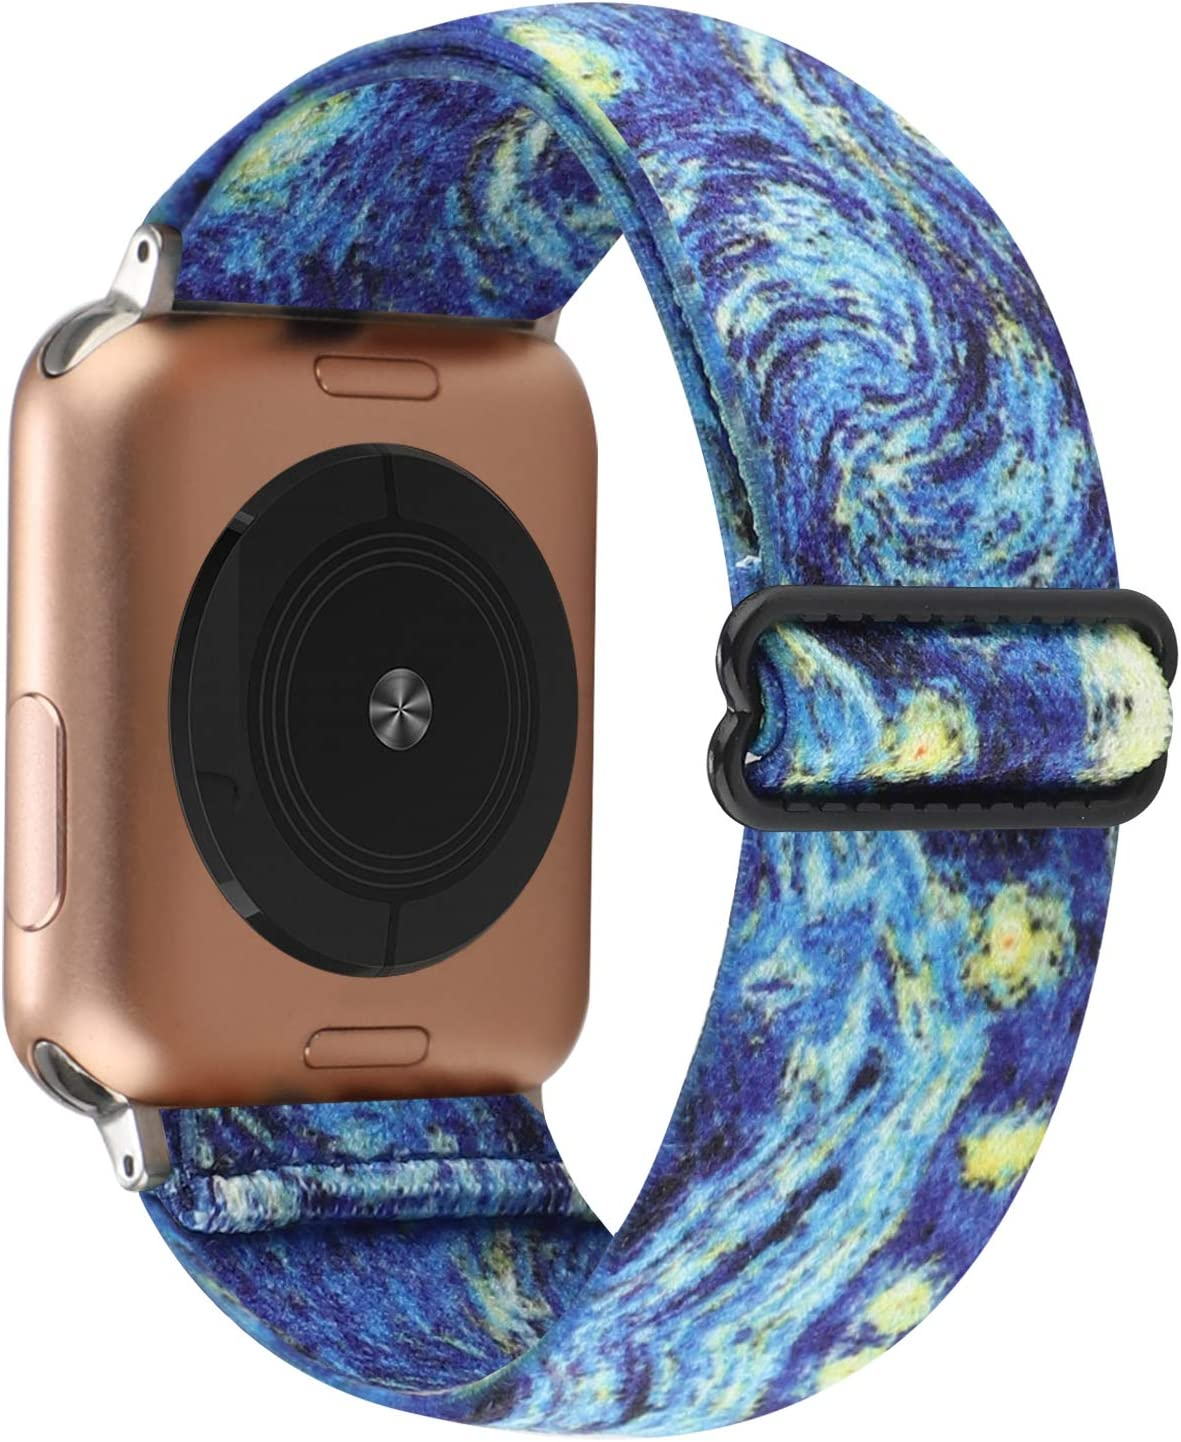 Adjustable Elastic Watch Band Compatible with Apple Watch 38mm 40mm, Nylon Stretchy Loop Bracelet Women Replacement for iWatch Series 6/5/4/3/2/1 (Starry Sky, 38mm/40mm)